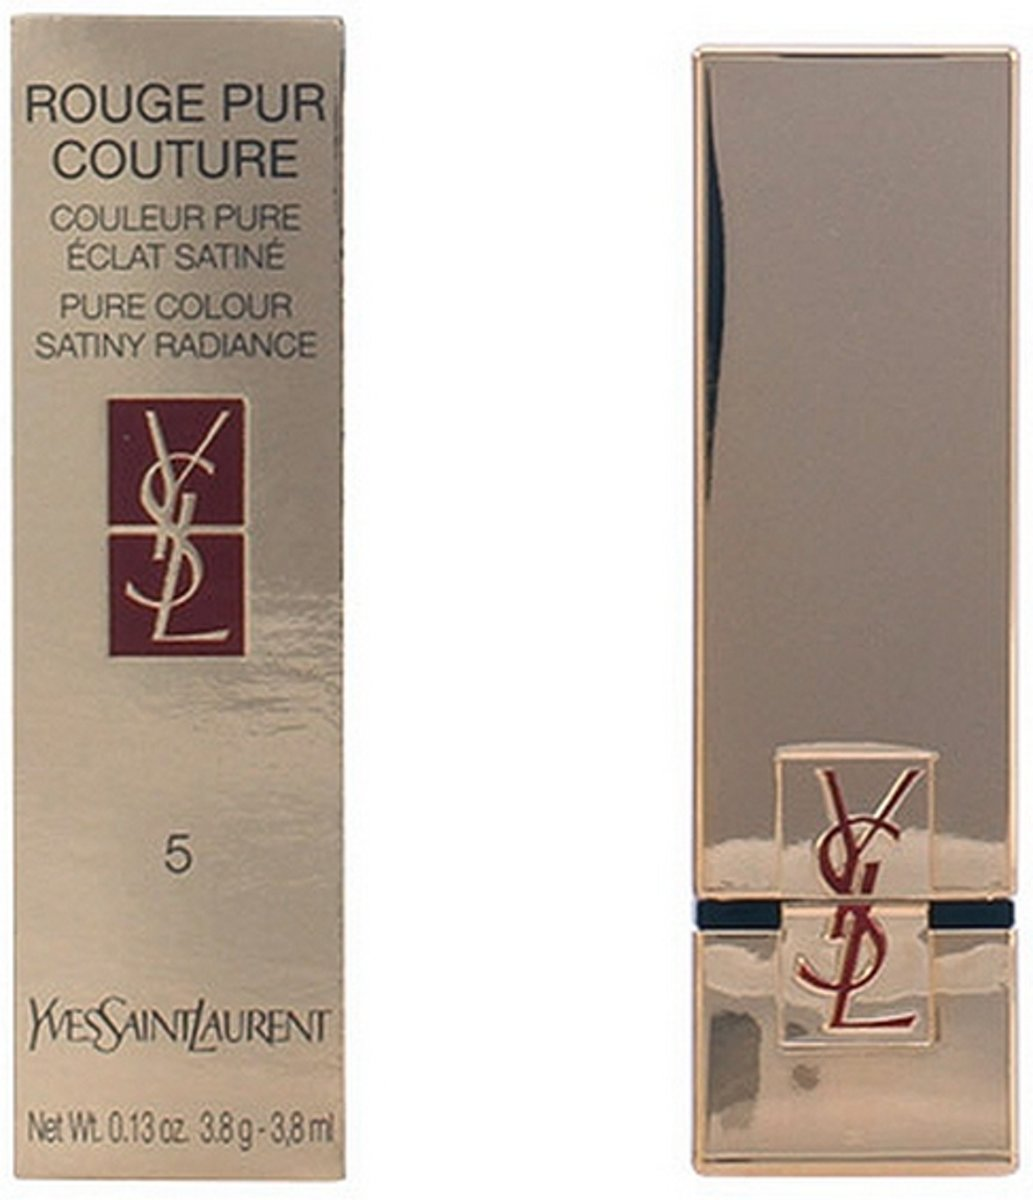 Yves Saint Laurent Rouge Pur Couture Lipstick 1 st.